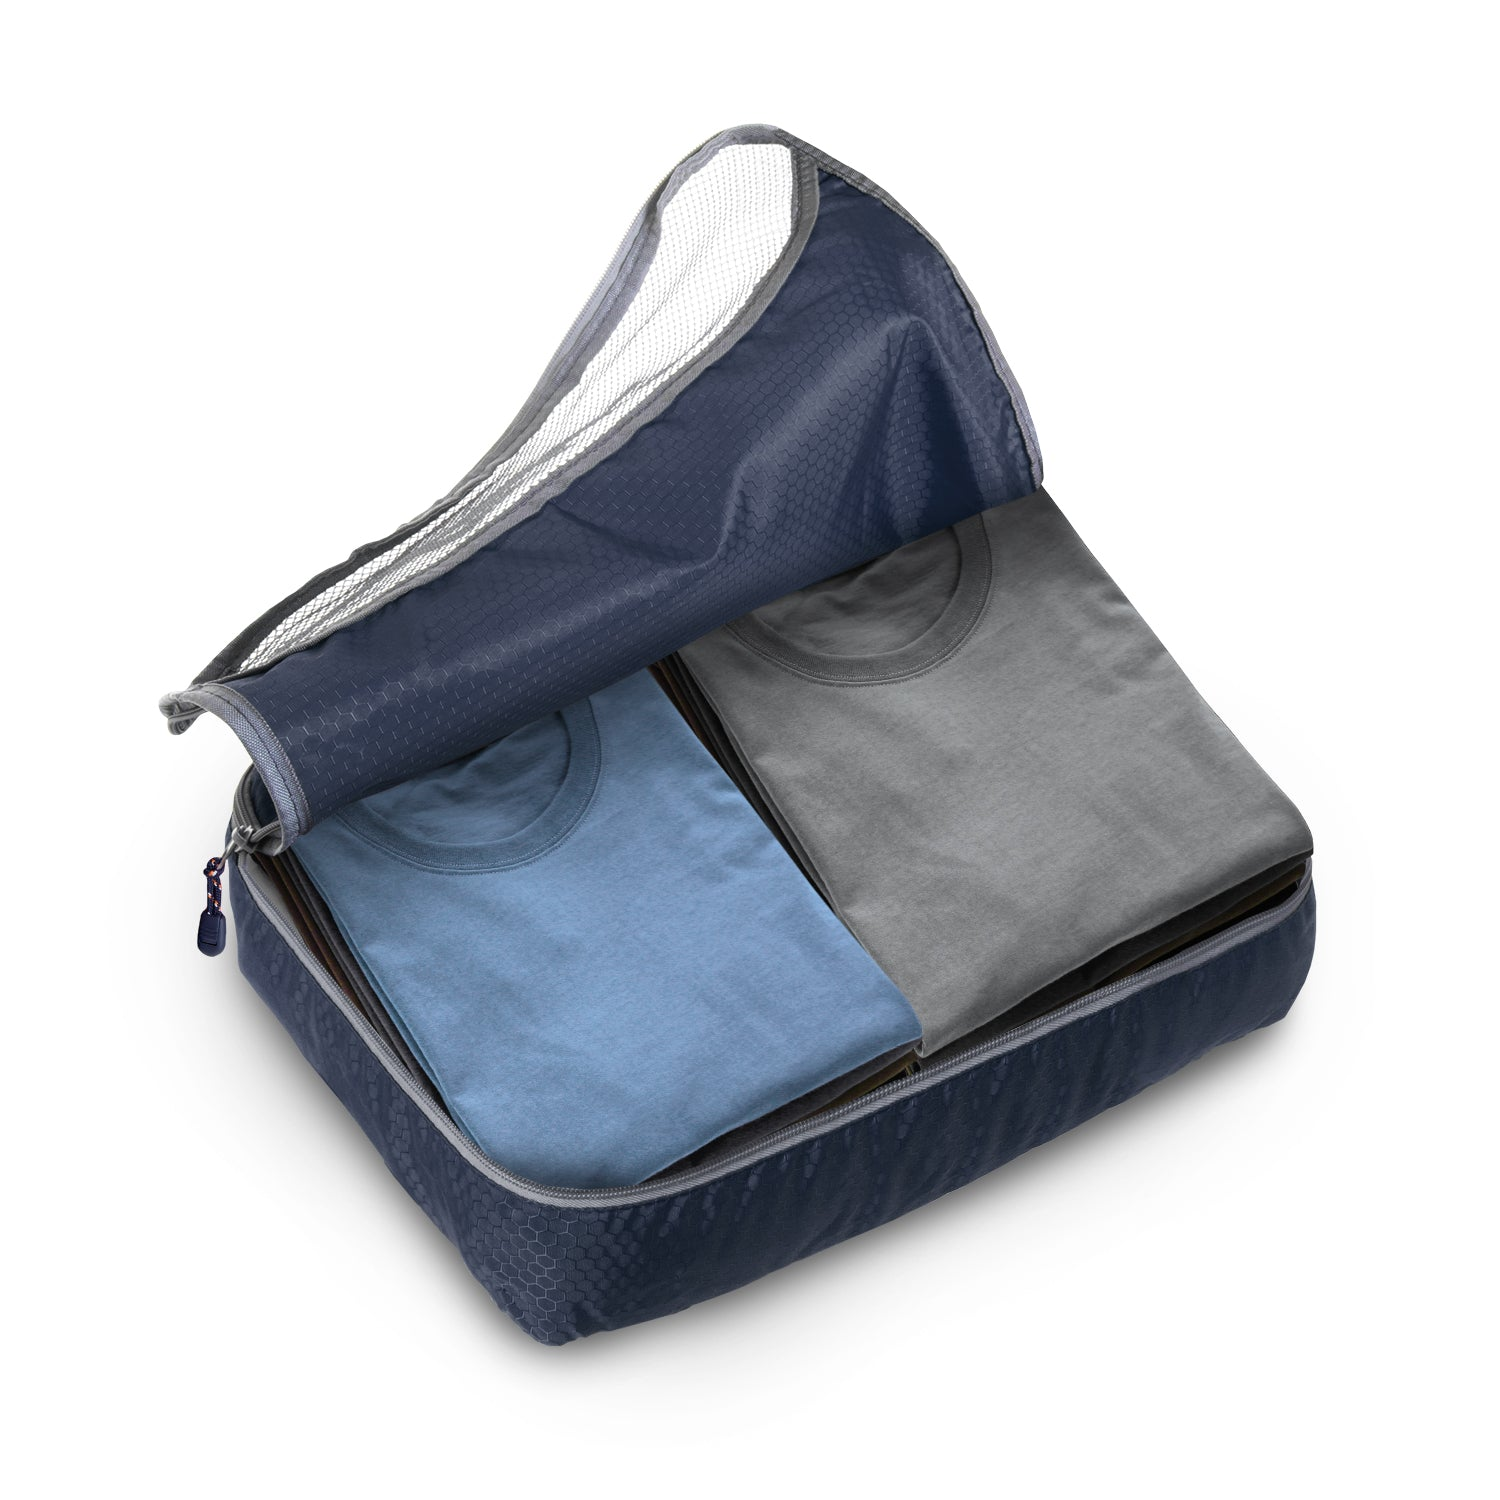 Packing Cube 3 Piece - Navy - globitetravel